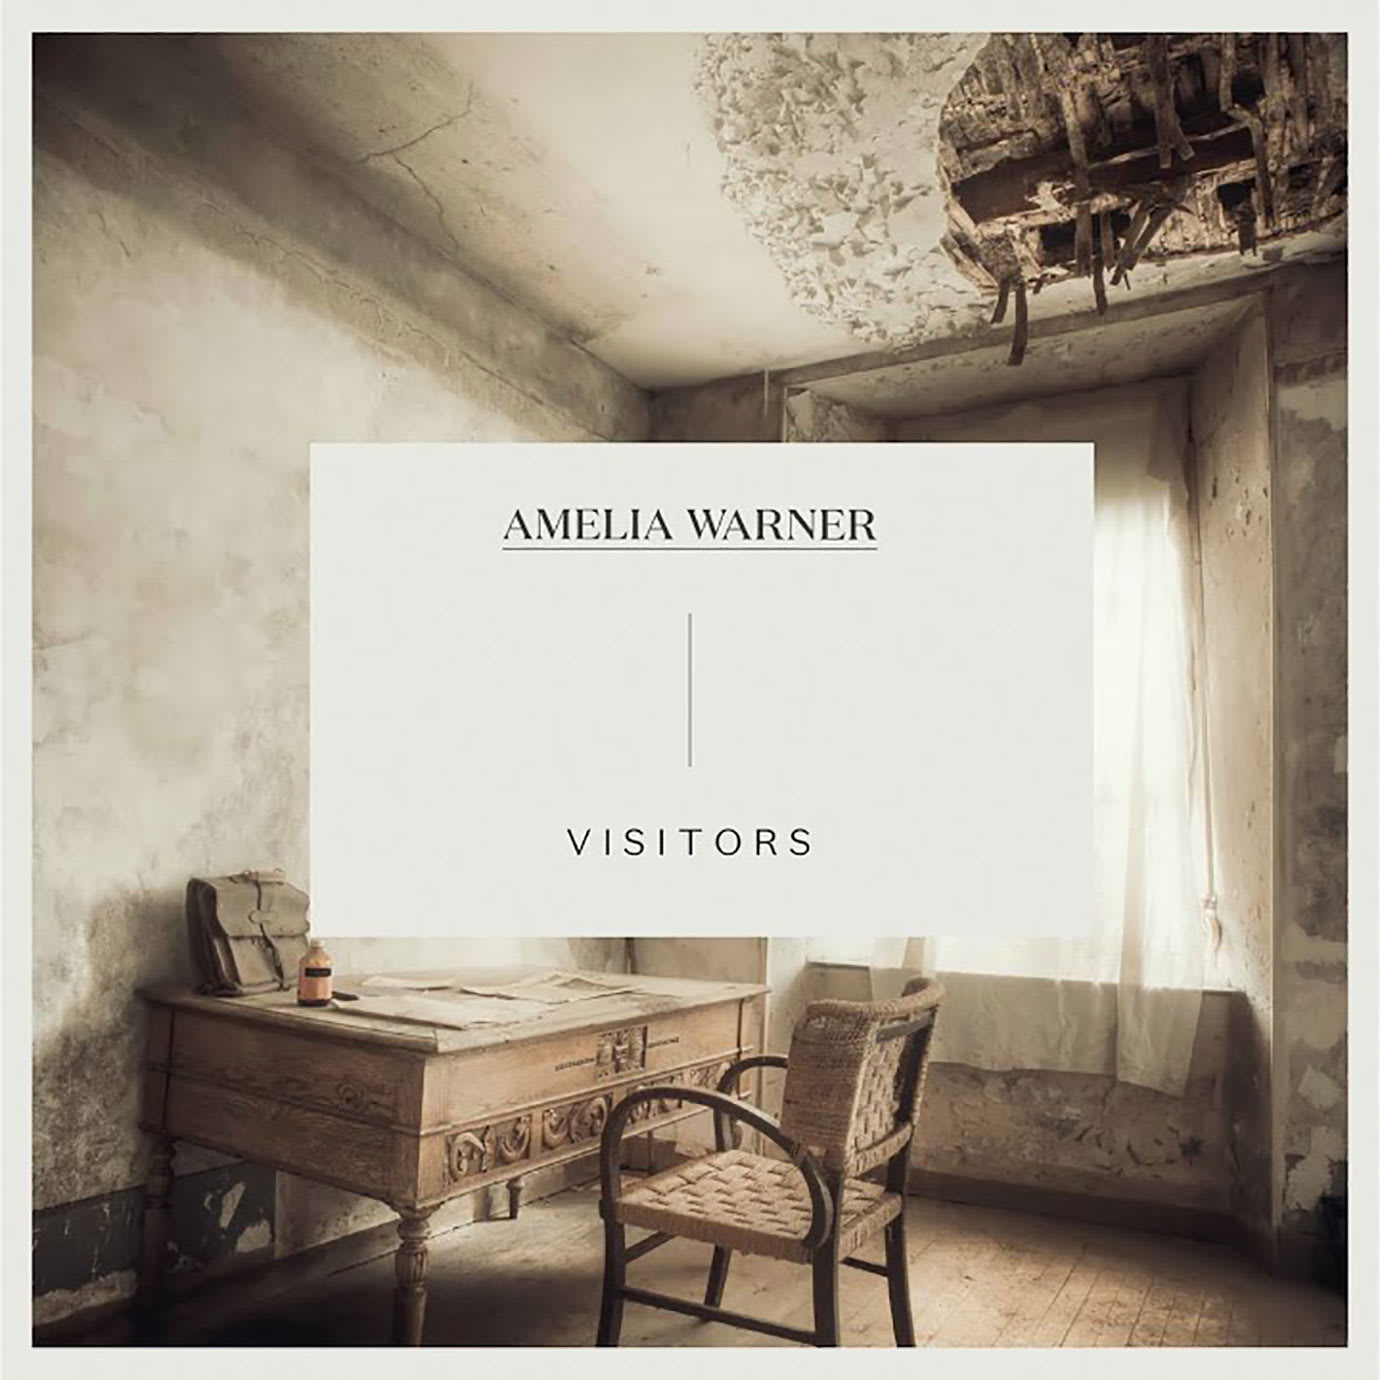 An album cover with an image of an old room on it and Amelia Warner Visitors written on it.